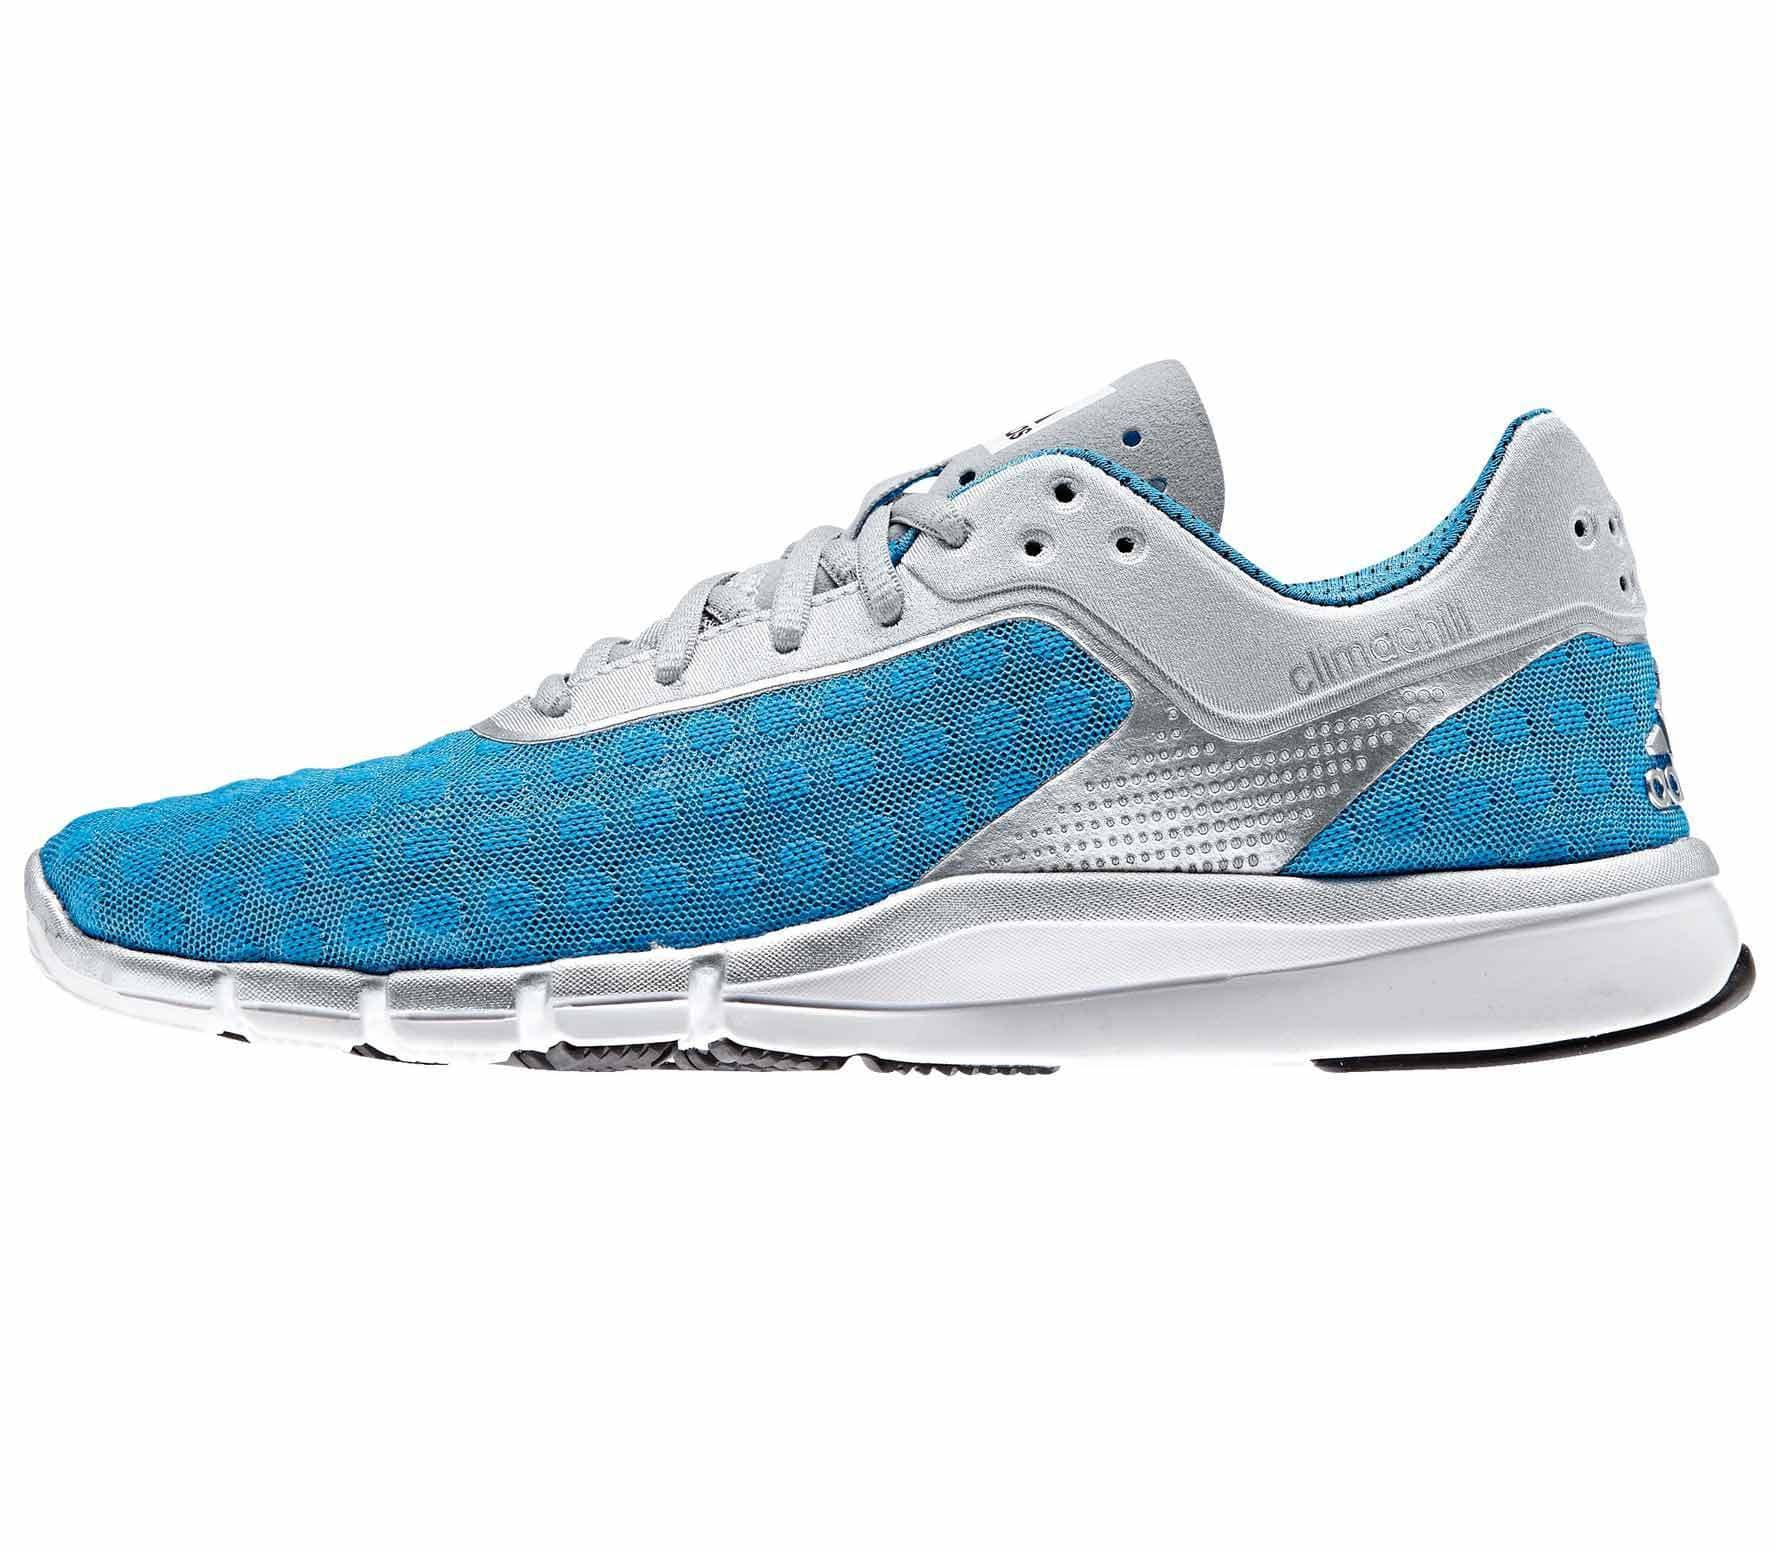 buy popular 04810 1d8c5 Adidas - Adipure 360.2 Chill womens training shoes (bluesilver)